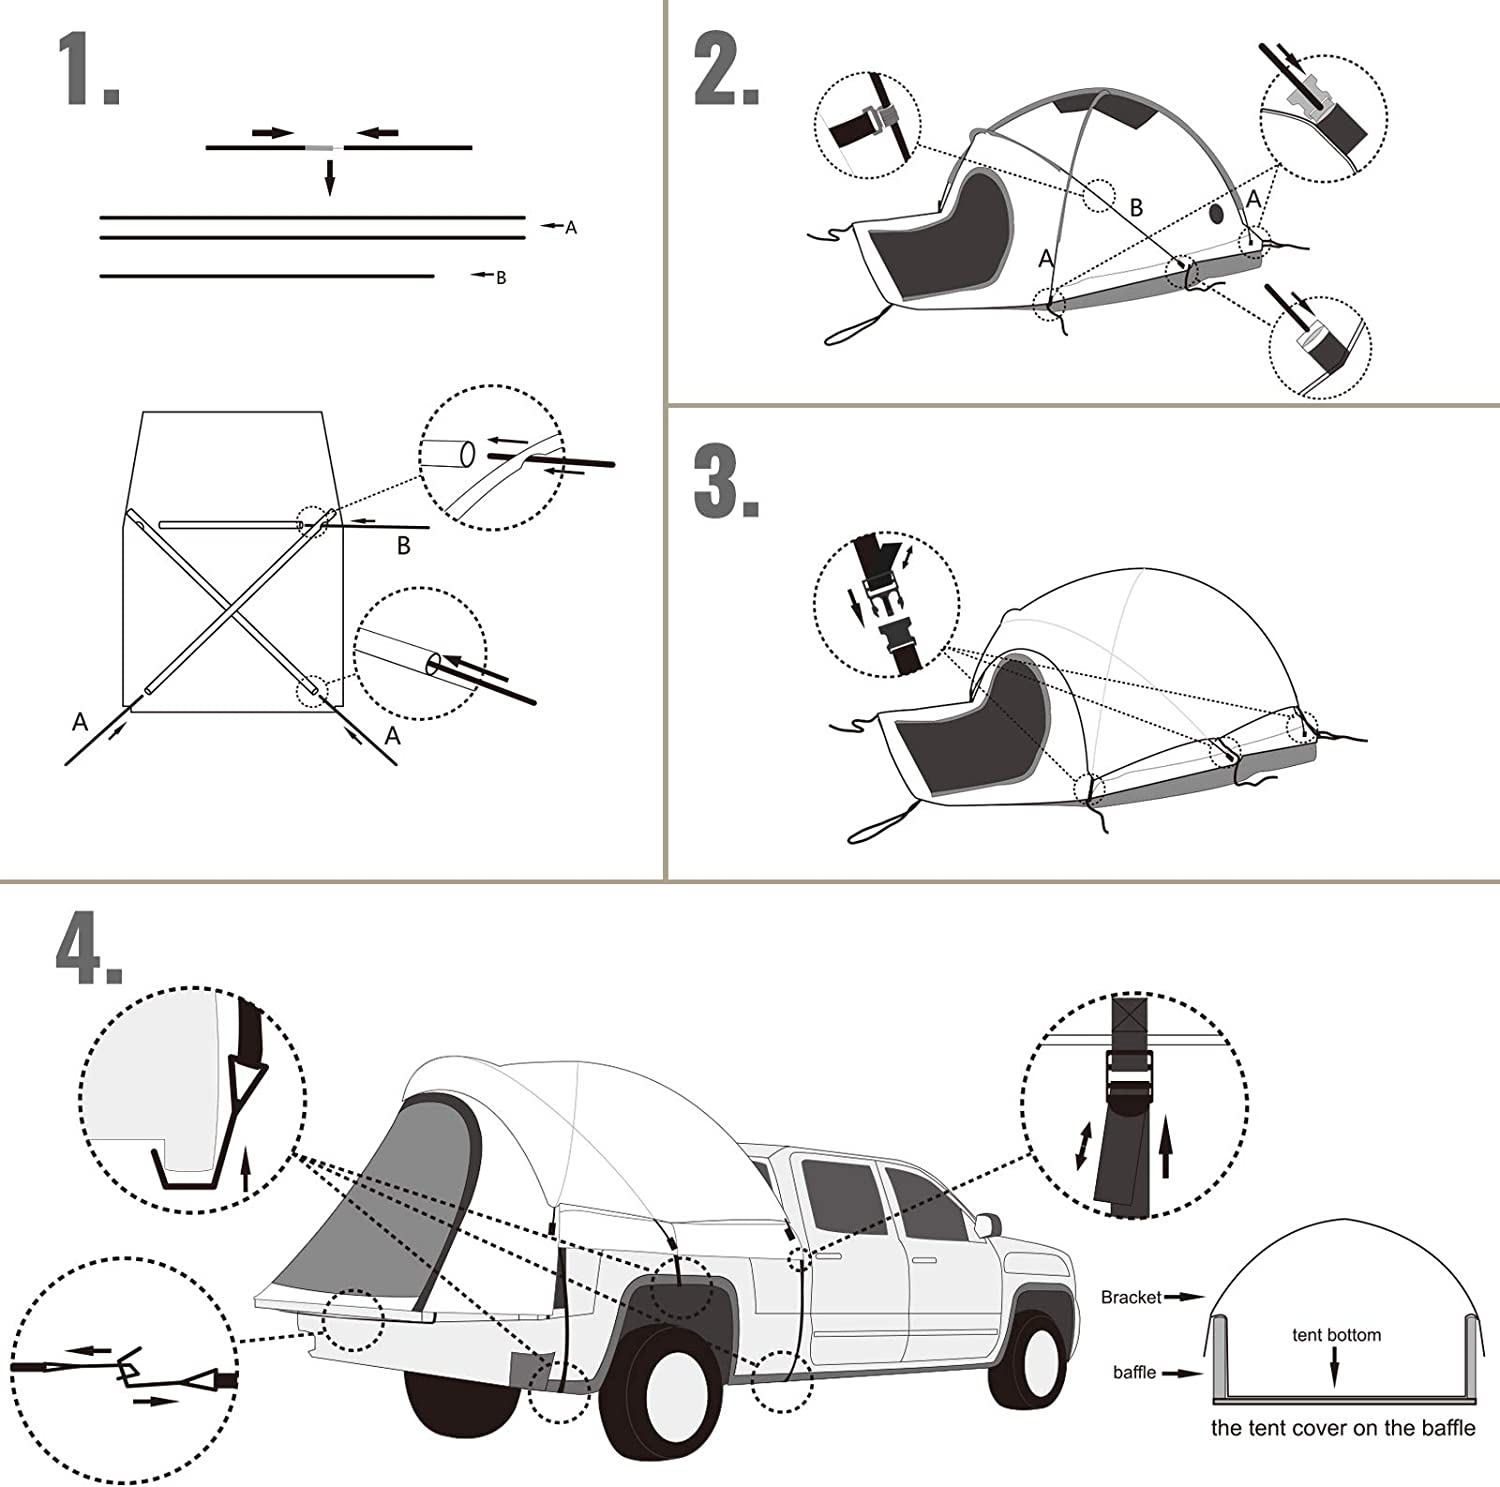 Easy To Setup Truck Tents For Camping Fishing 2-Person Sleeping Capacity Hiking VEVOR Truck Tent 8/' Truck Bed Tent 2 Mesh Windows Pickup Tent for Full Size Truck Waterproof Truck Camper